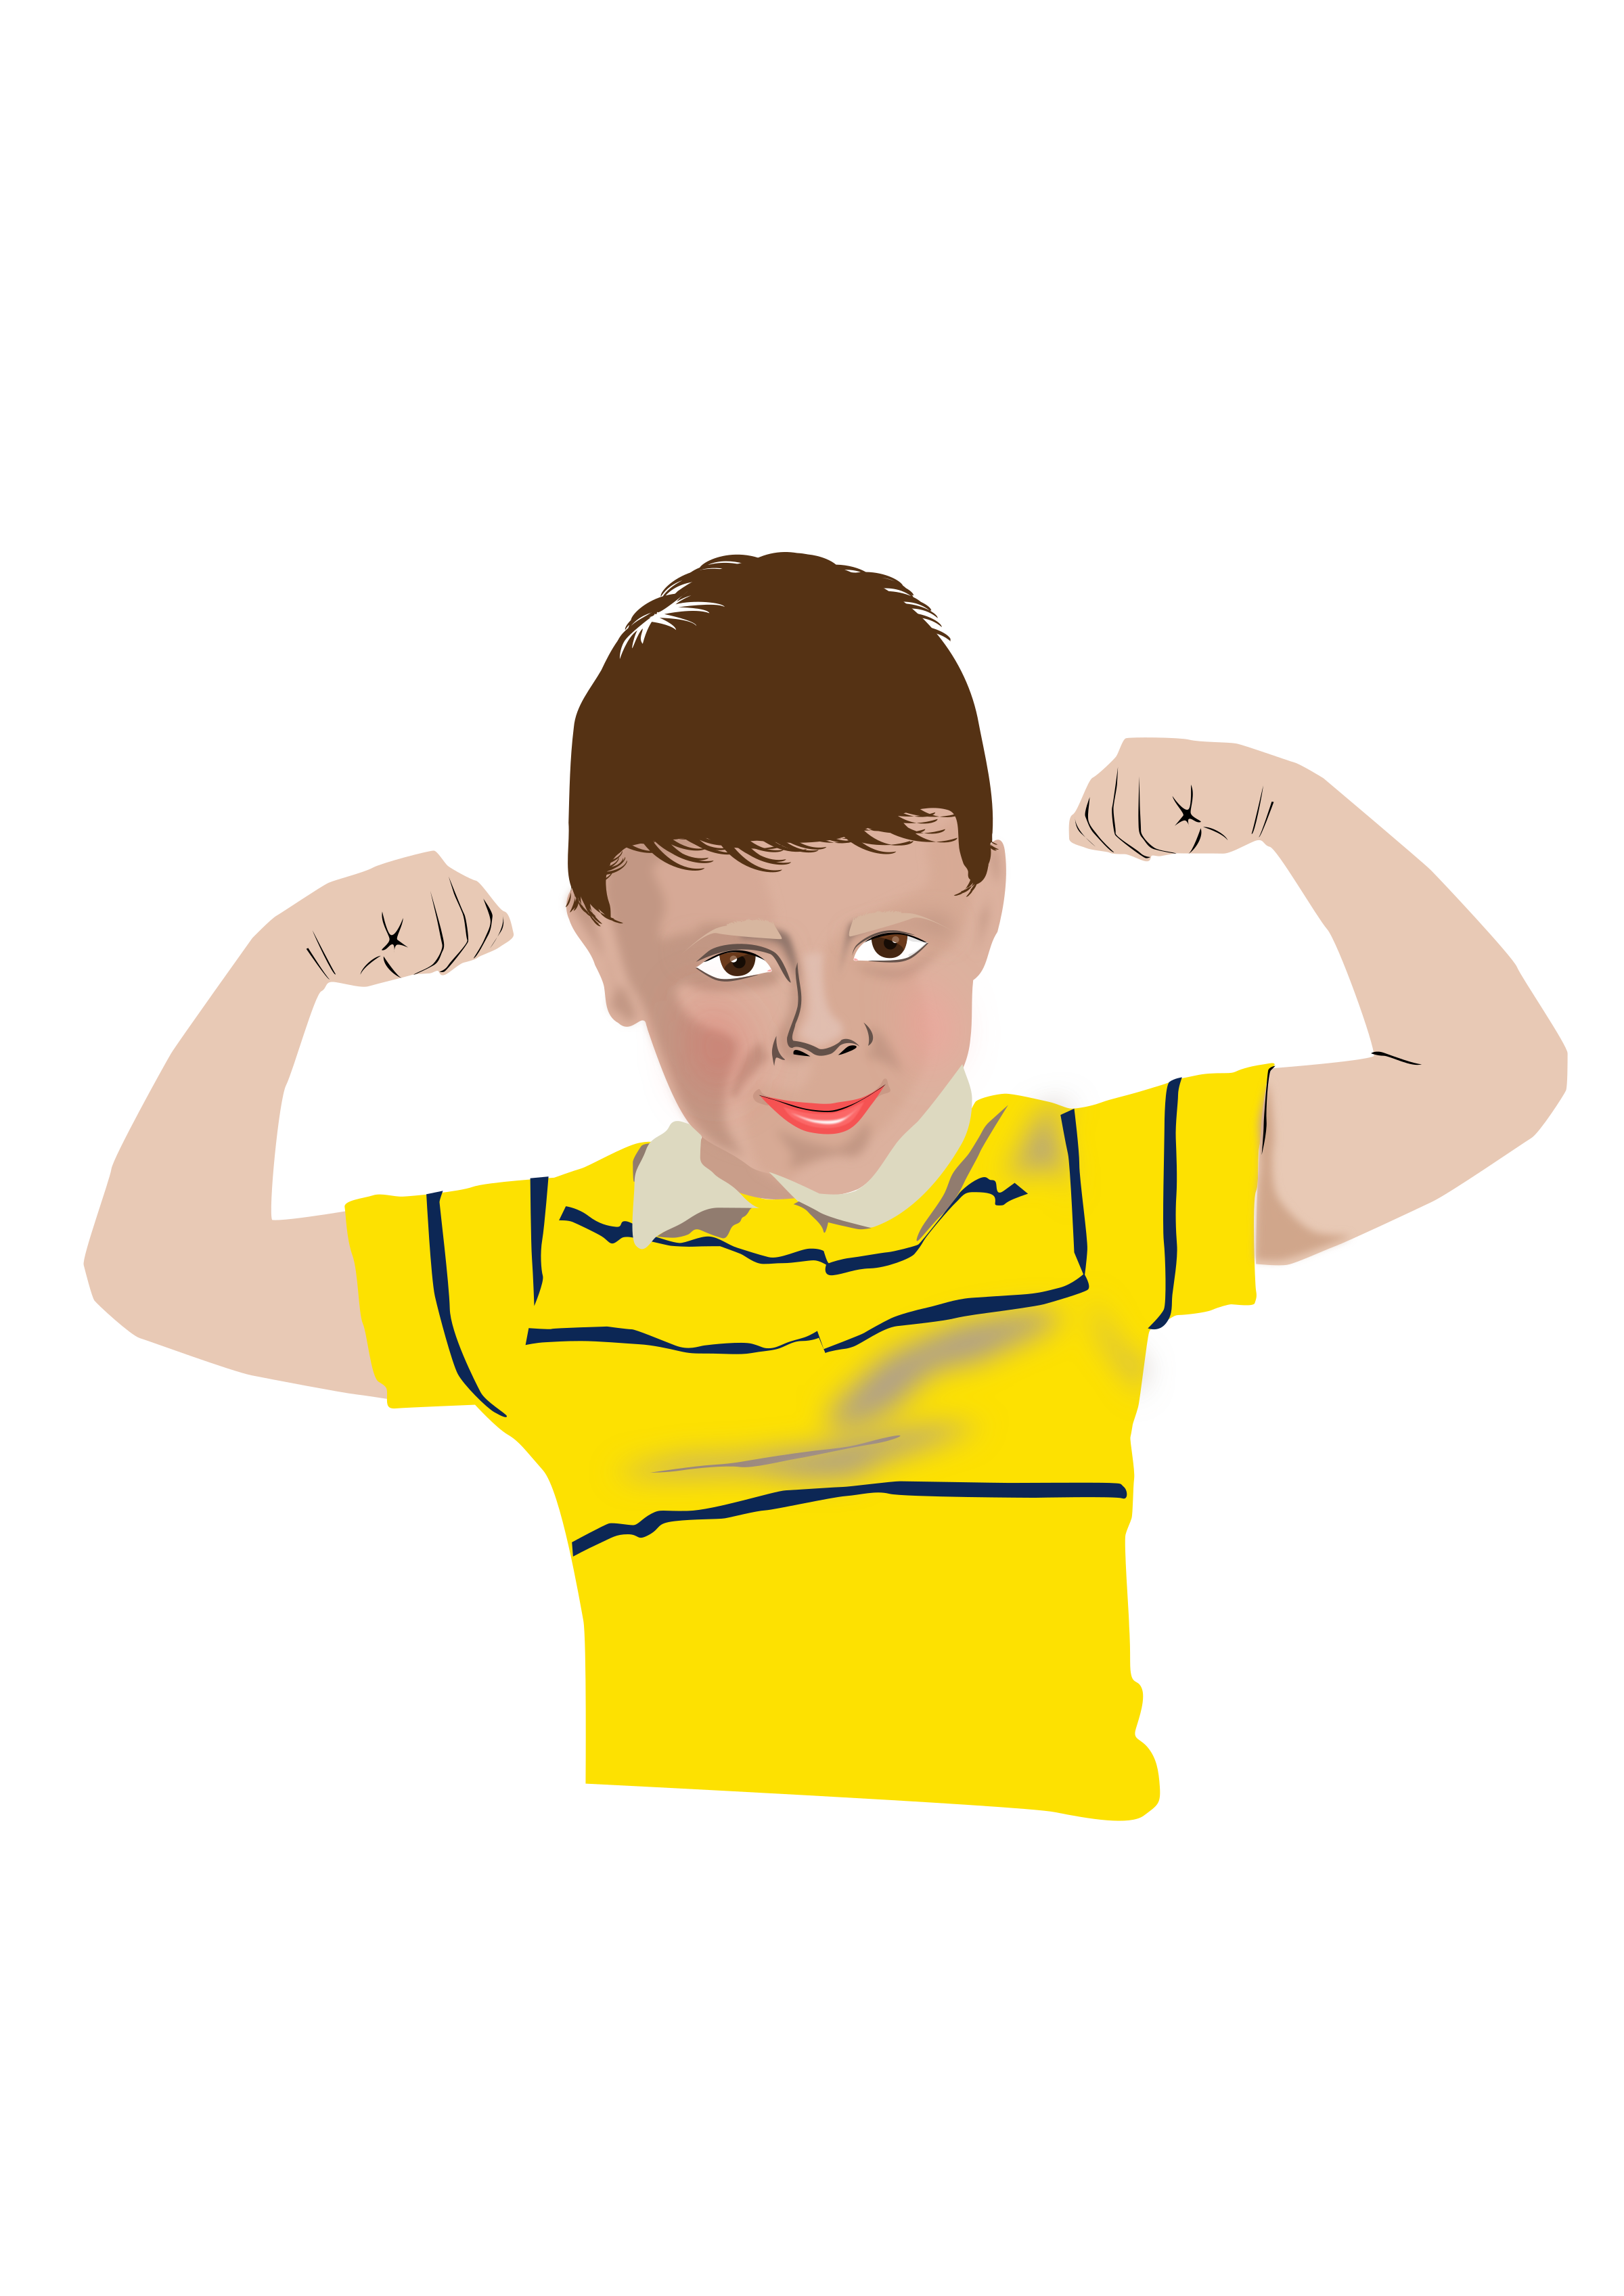 Image tracing big png. Healthy clipart healthy child